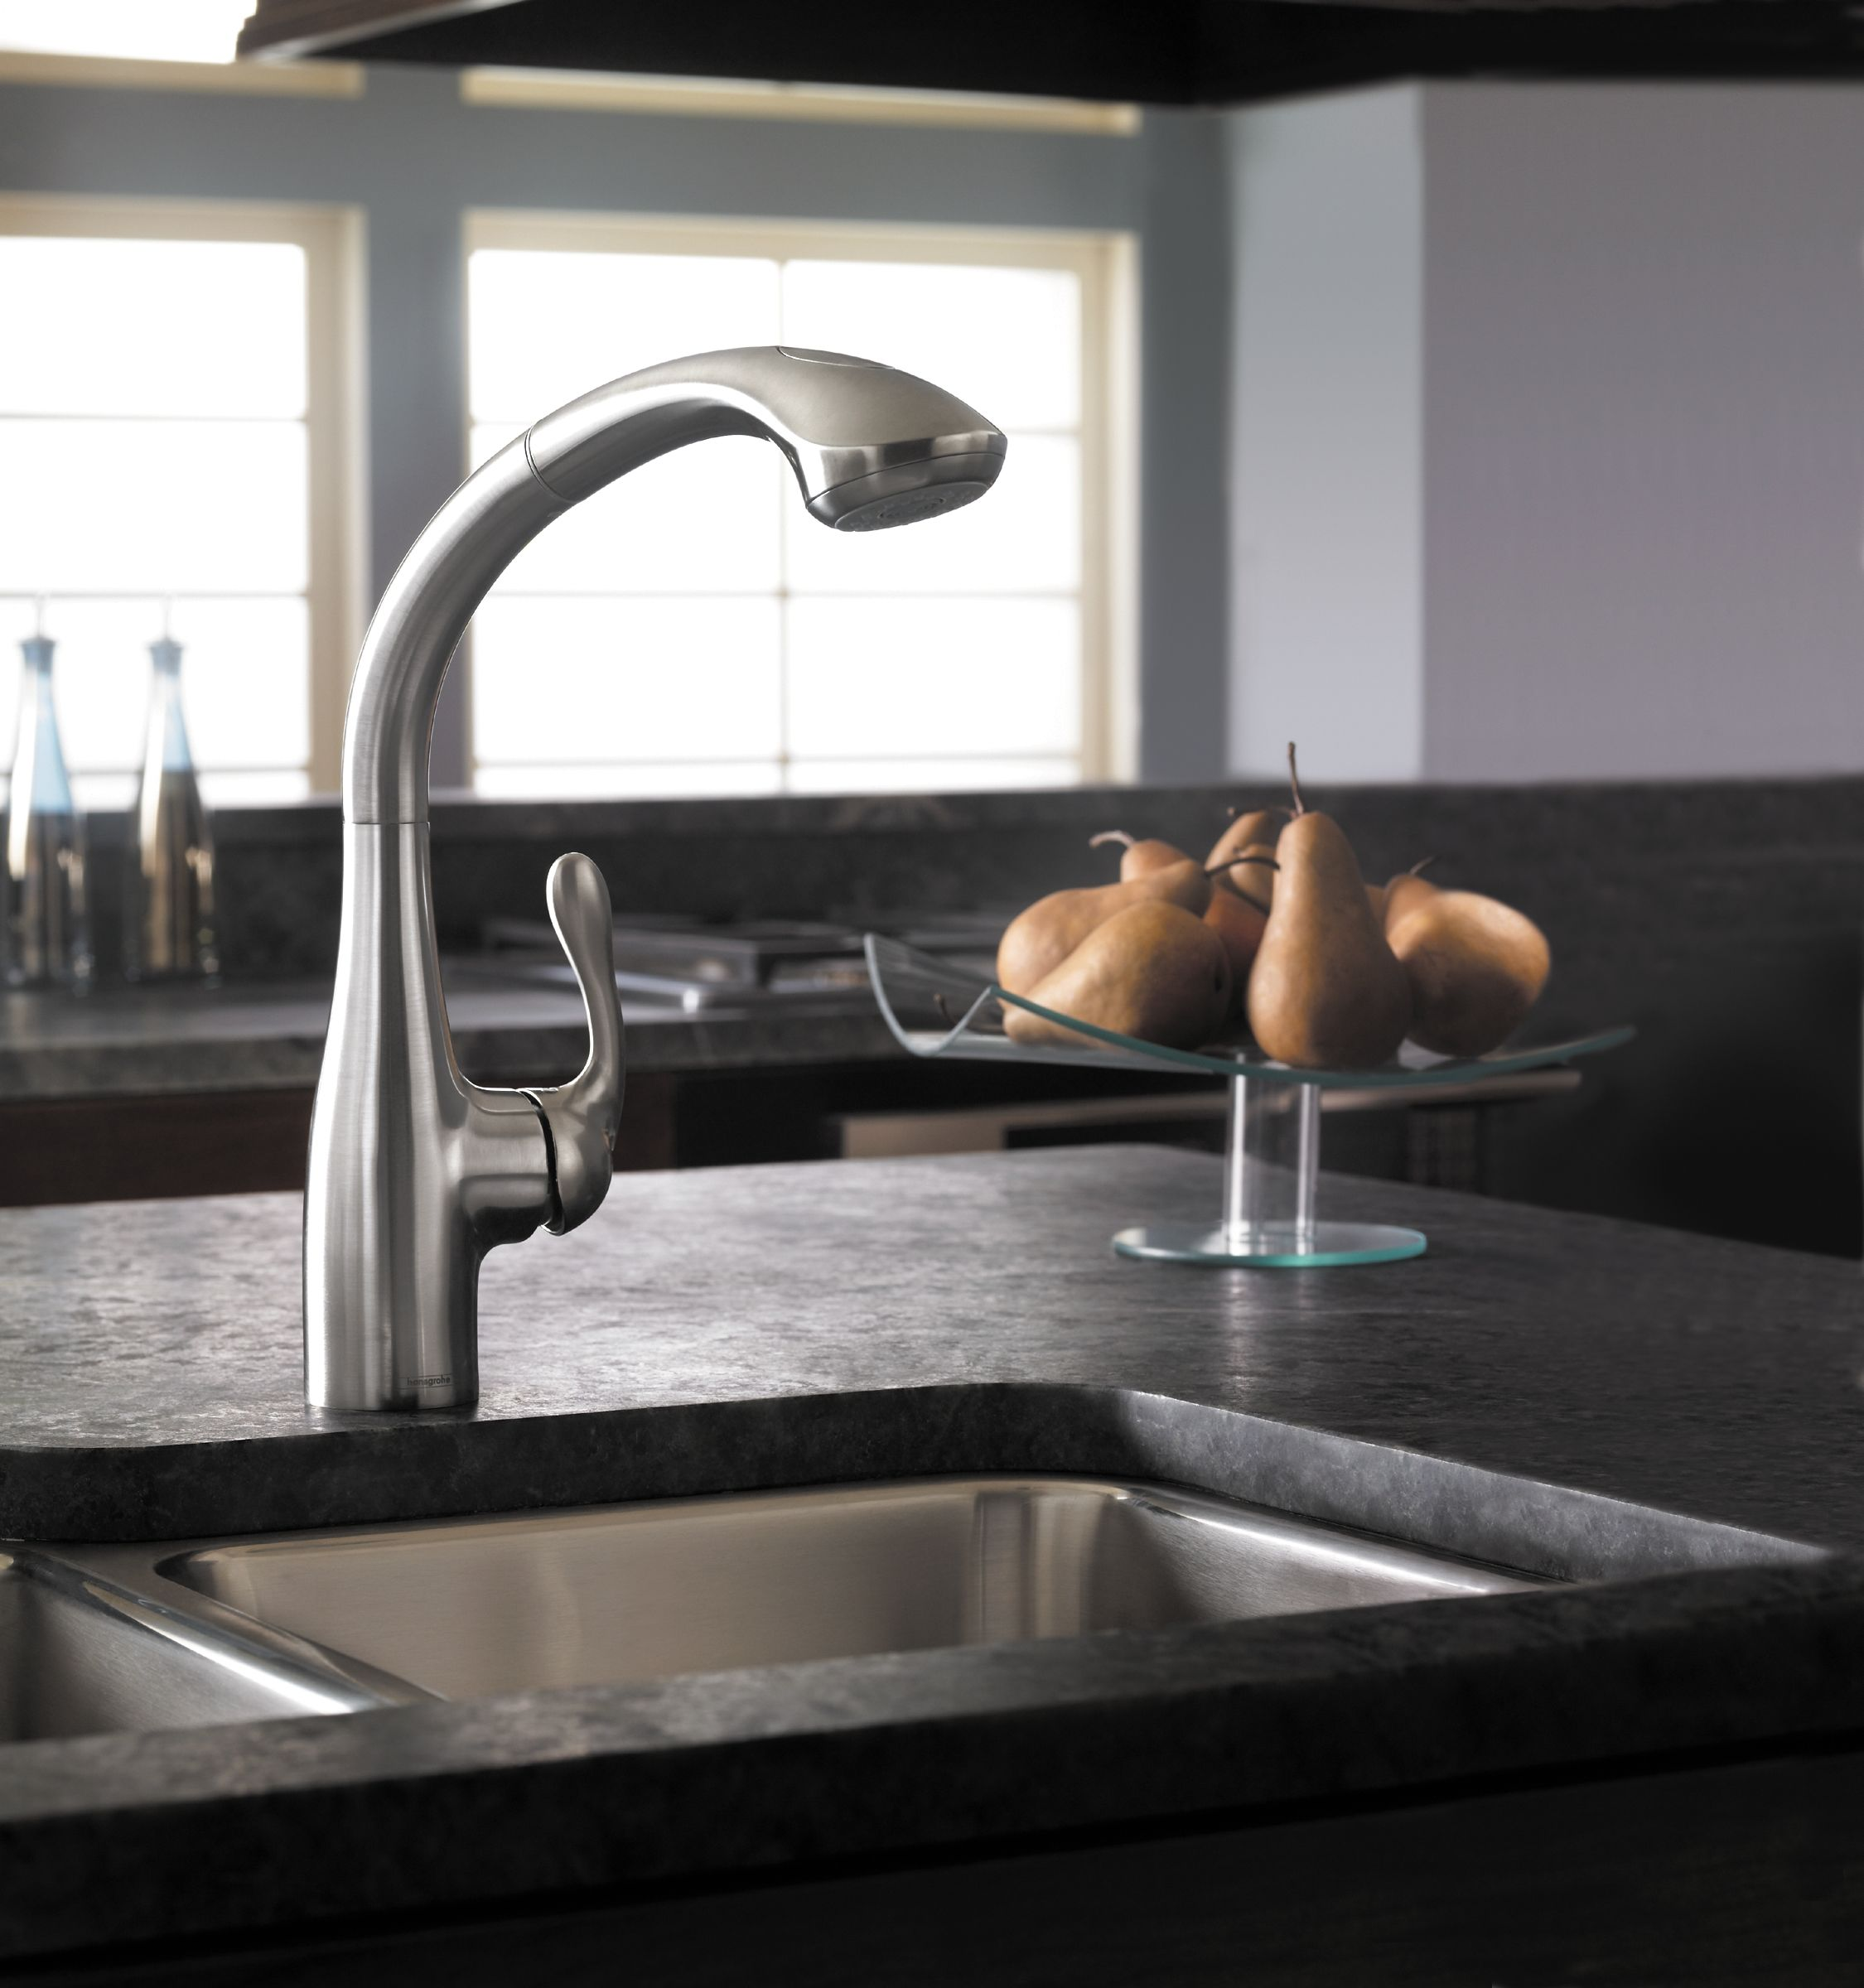 prevent equipped colour steel with to valve flow mixer higharc faucet hansgrohe handspray back kitchen check vimmern stainless metro tap ikea pin